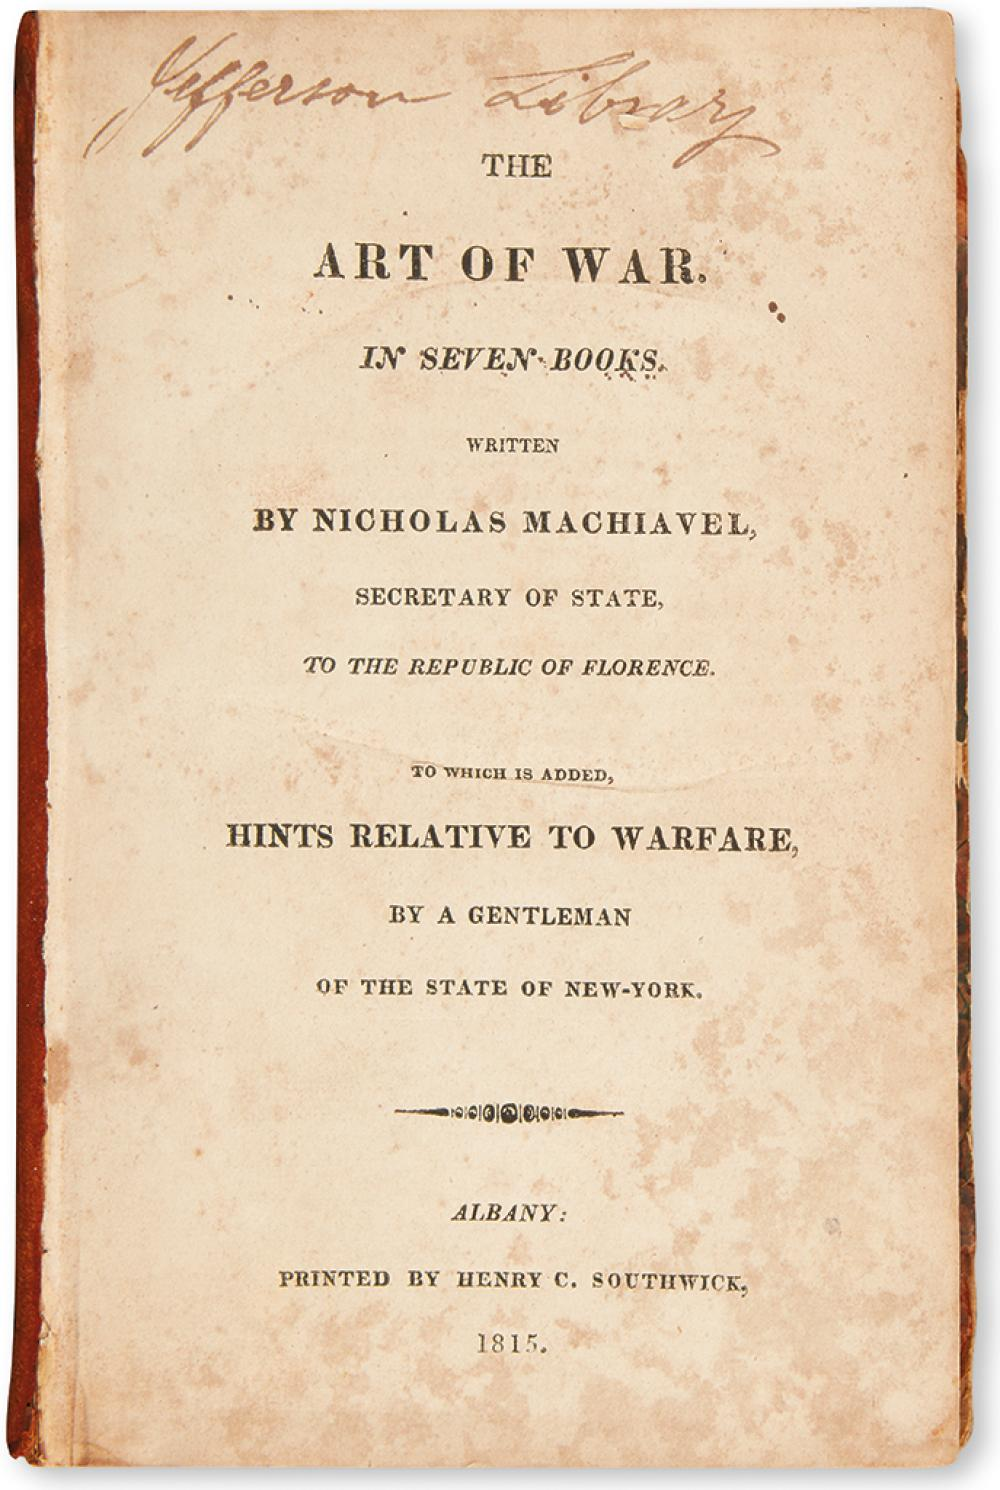 [MACHIAVELLI.] Machiavel, Nicholas. The Art of War. In Seven Books. To which is Added, Hints Relative to Warfare,